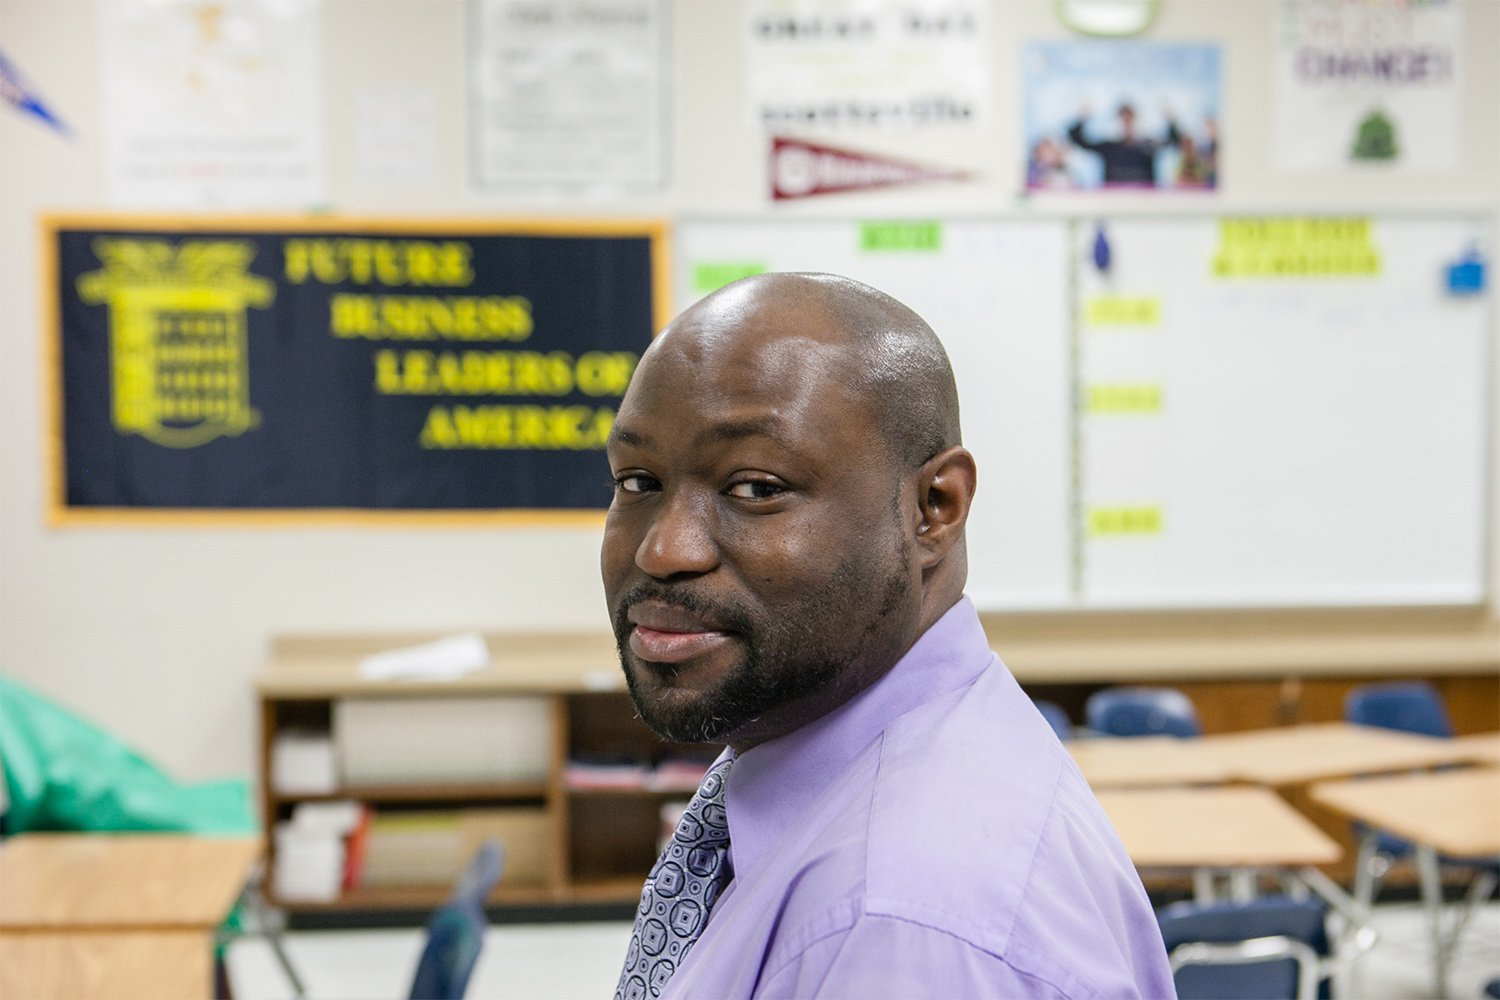 Teachers like Roderick Scott make up one of the largest groups of professionals in Texas at risk of losing their license because of student loan default, according to data maintained by Trellis.